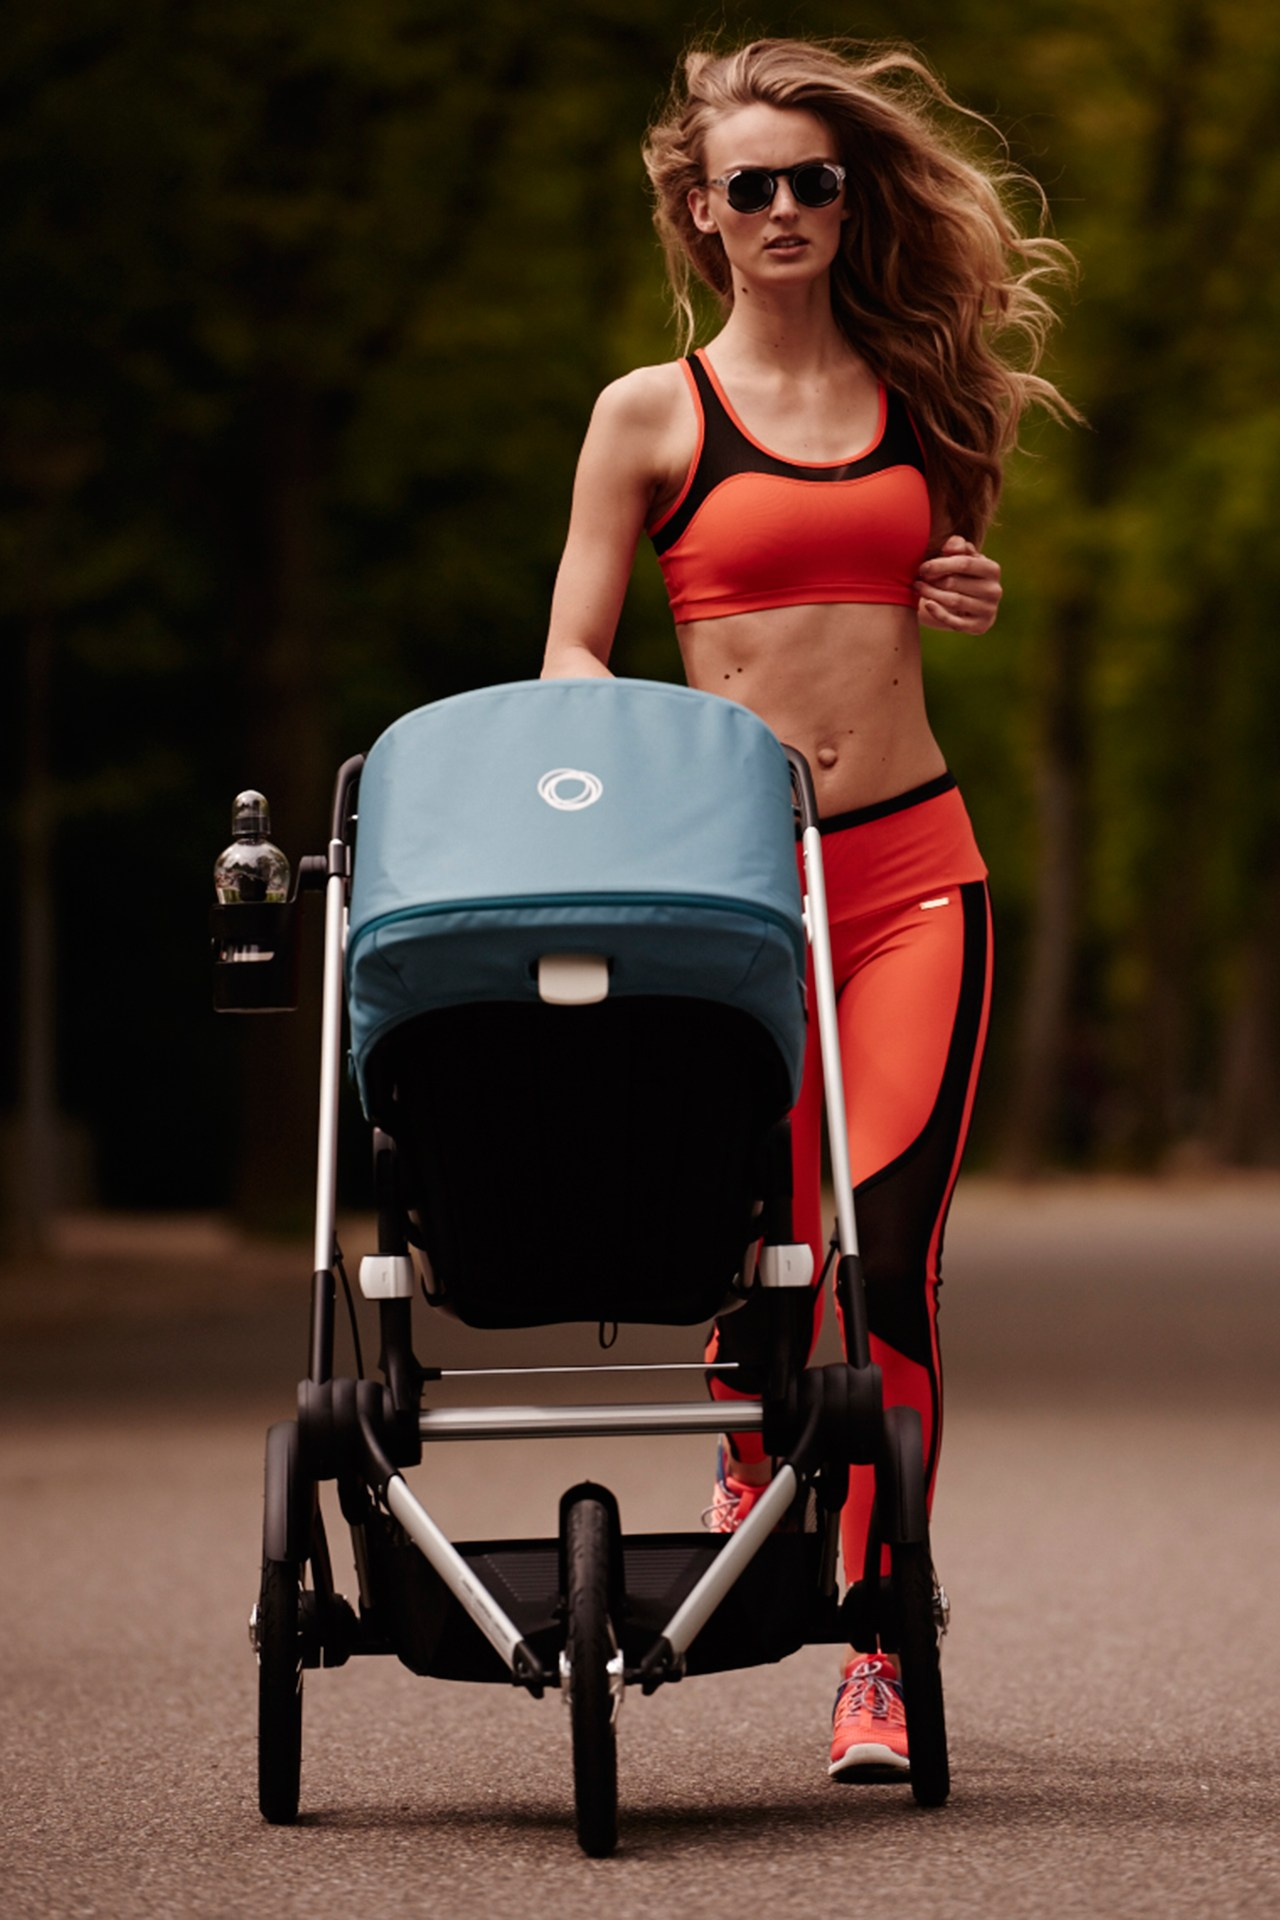 Ymre Stiekema with her running stroller Picture credit: Duy Vo/Vogue Netherlands/Bugaboo